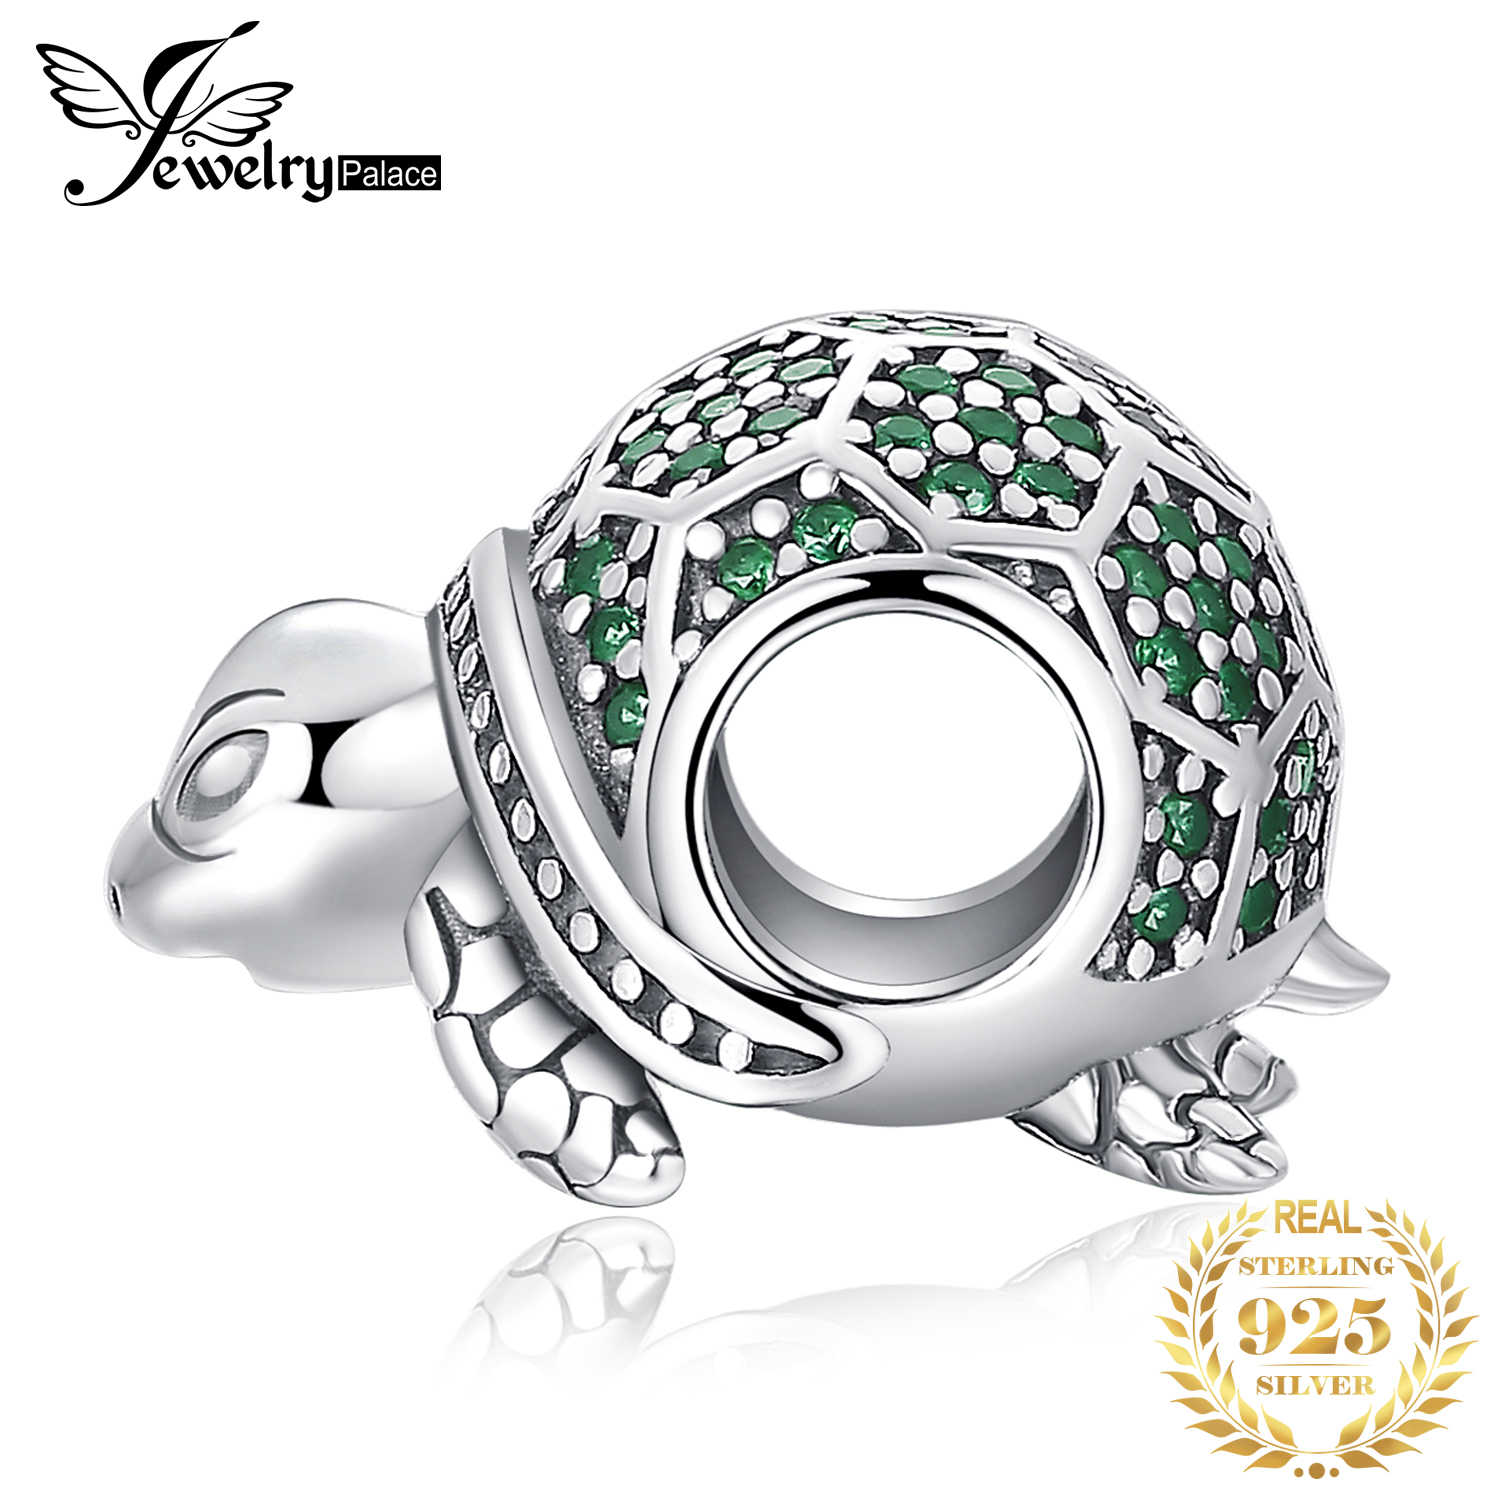 JewelryPalace Oceano Animal Tartaruga Nano Russa Simulado Esmeralda 925 Prata Esterlina Grânulos de Charme Para As Mulheres 2018 New Hot